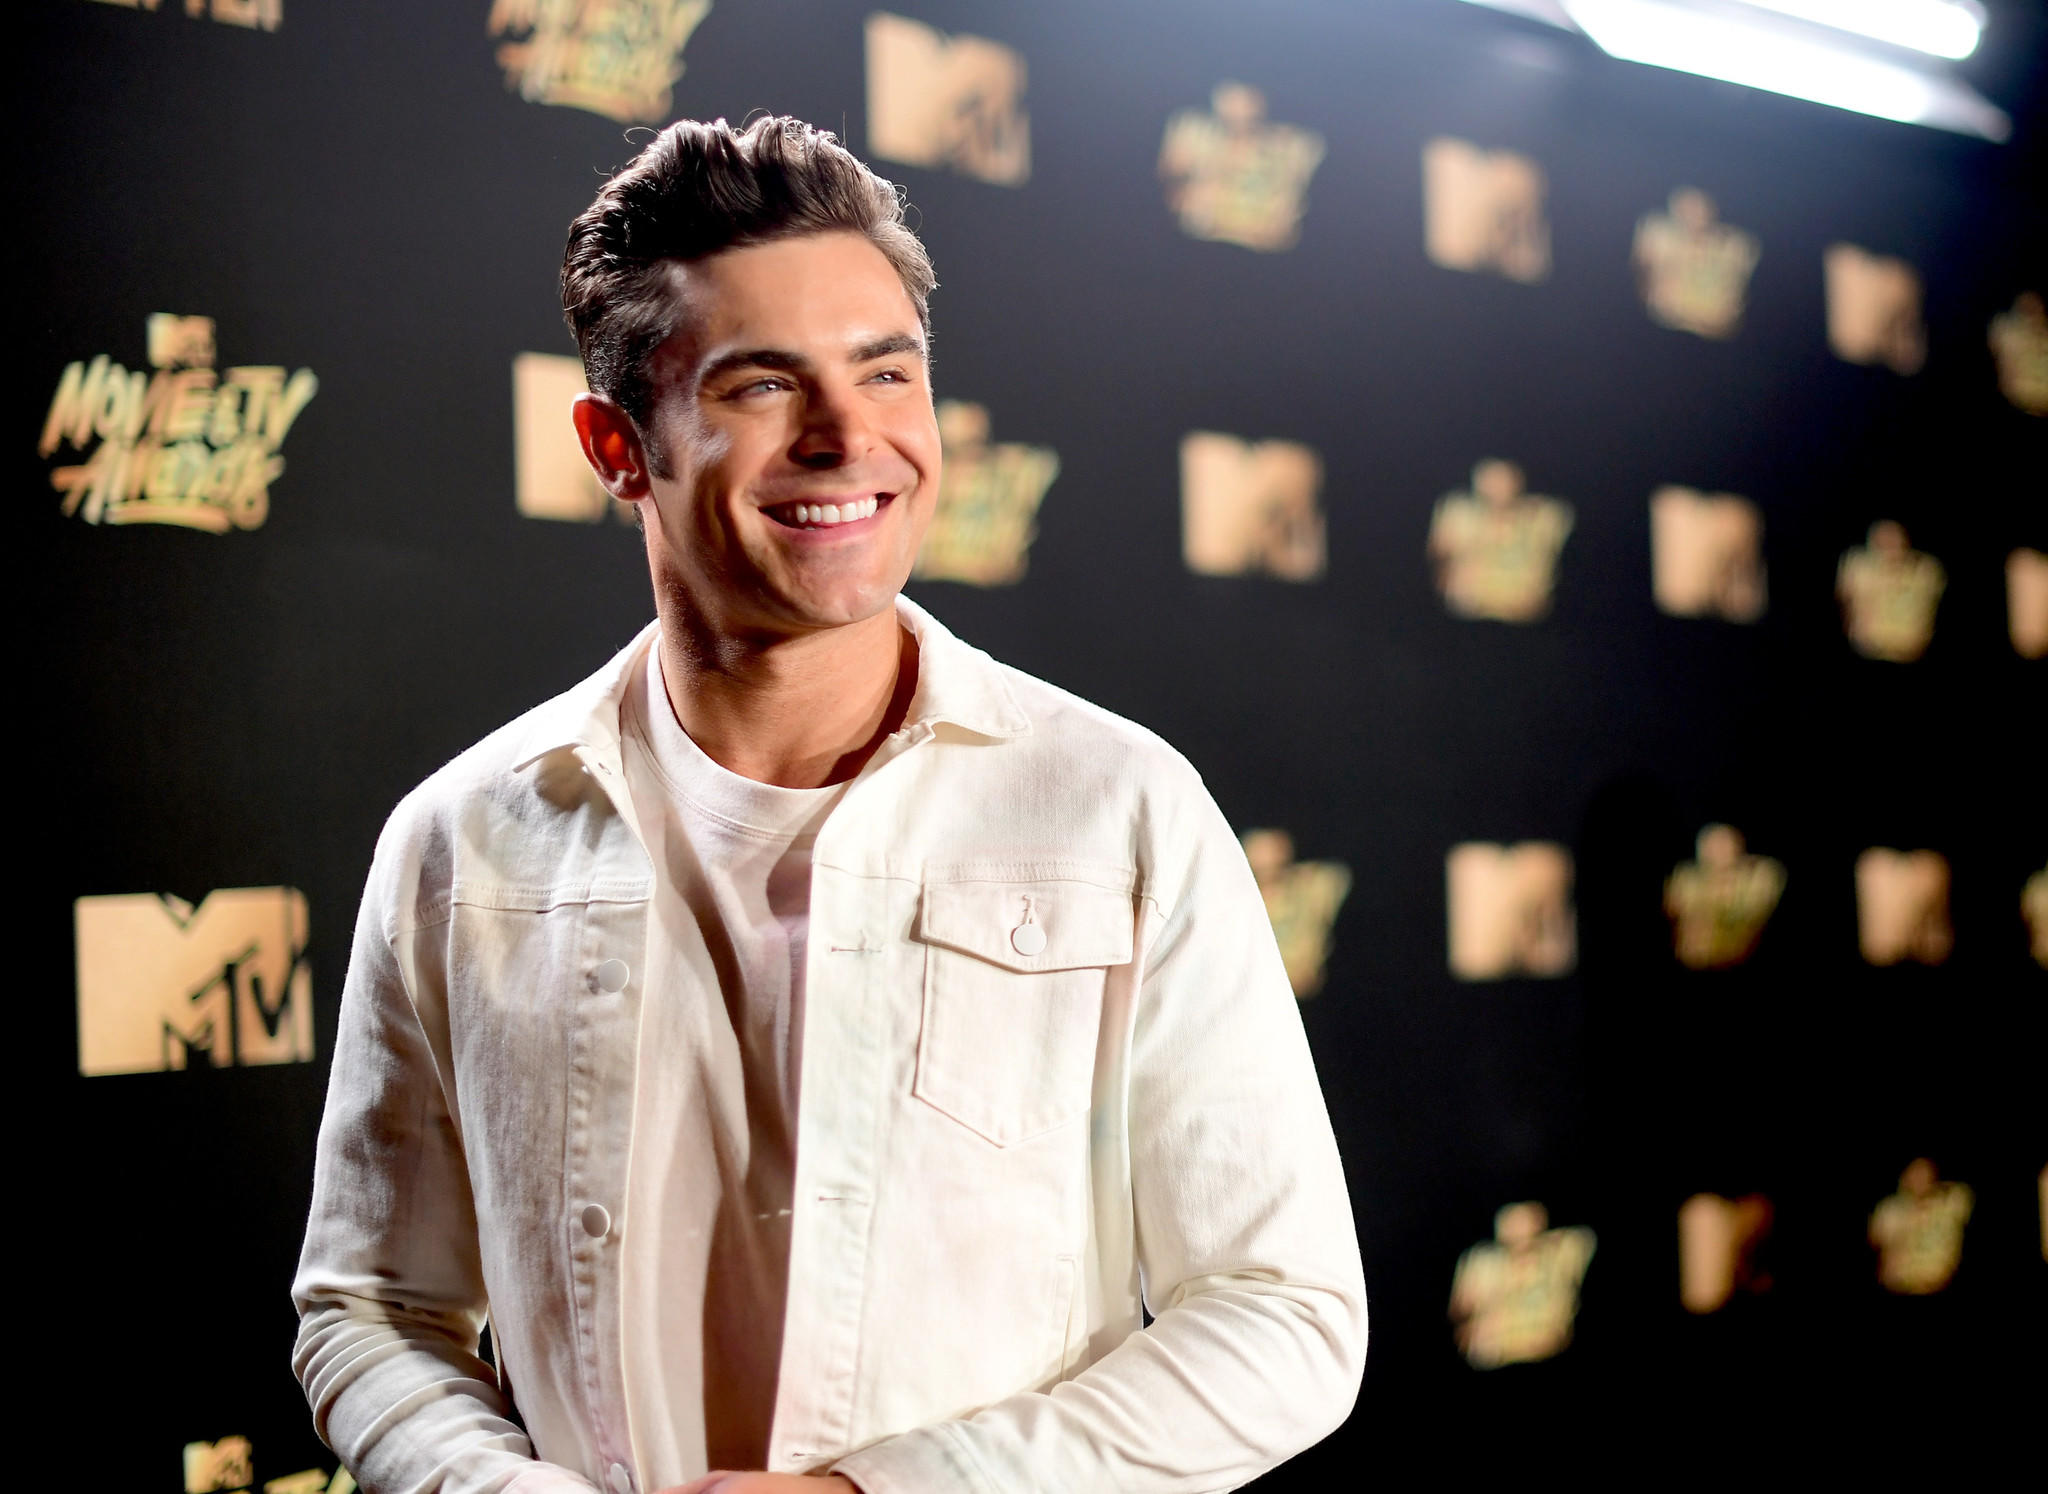 Zac Efron (Matt Winkelmeyer / Getty Images)